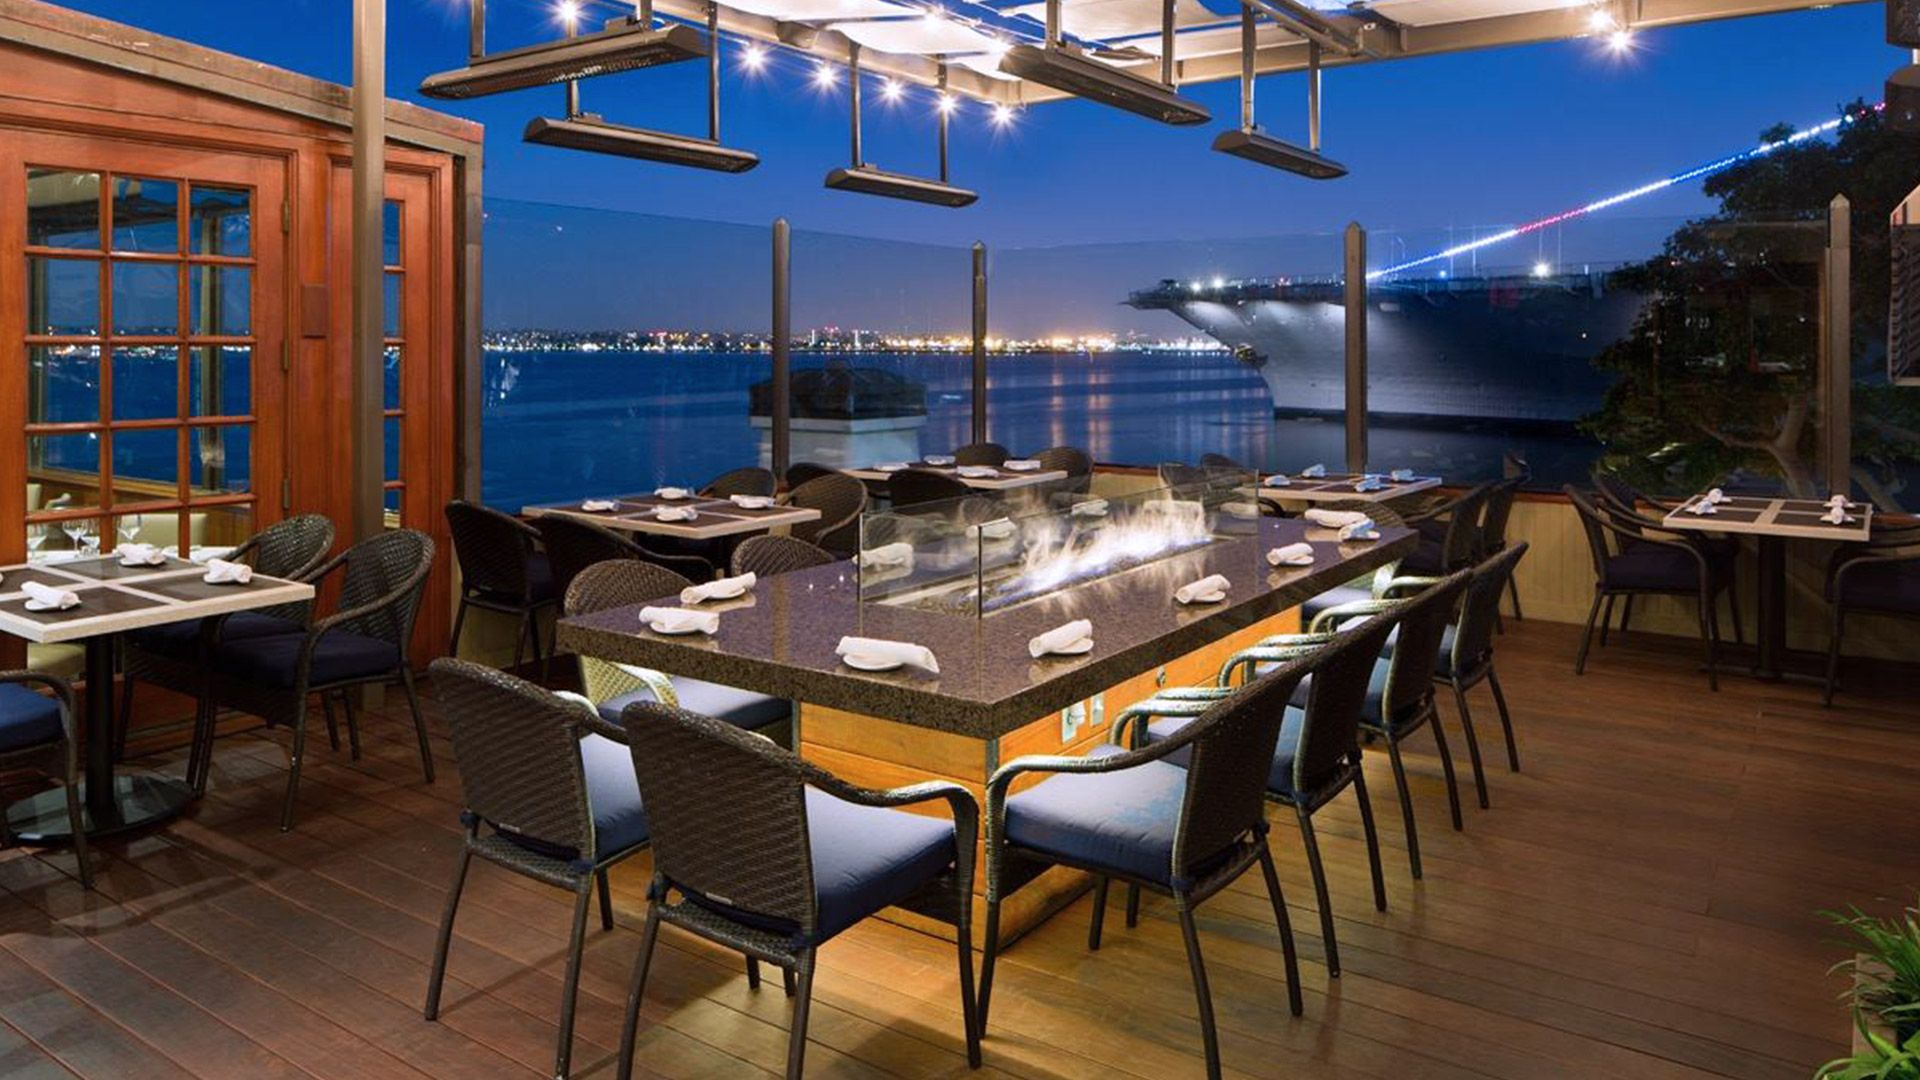 Pin By Samantha Sommersby On Best San Diego Restaurants San